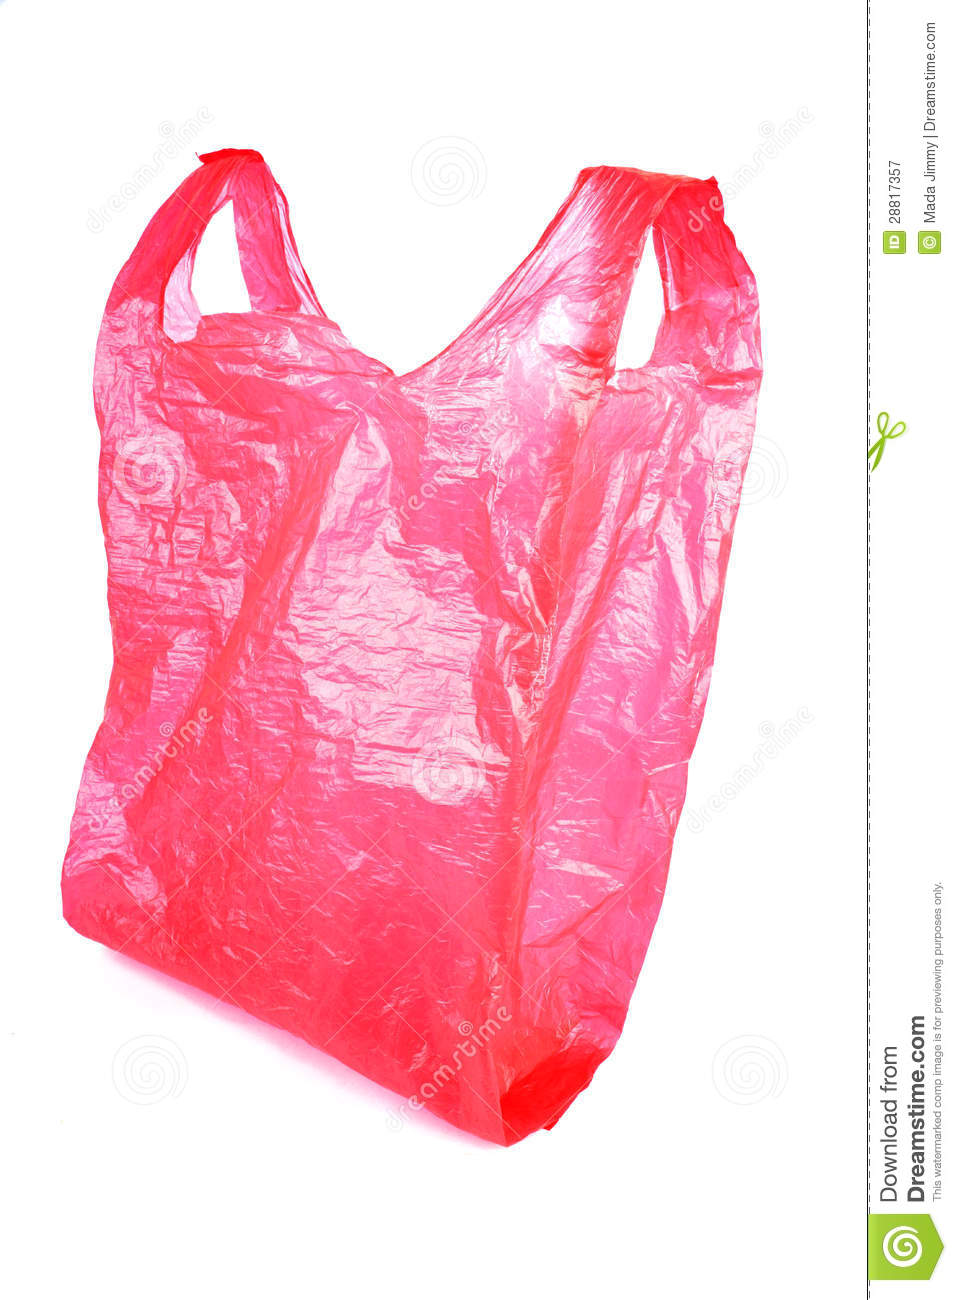 plastic bag royalty free stock photography